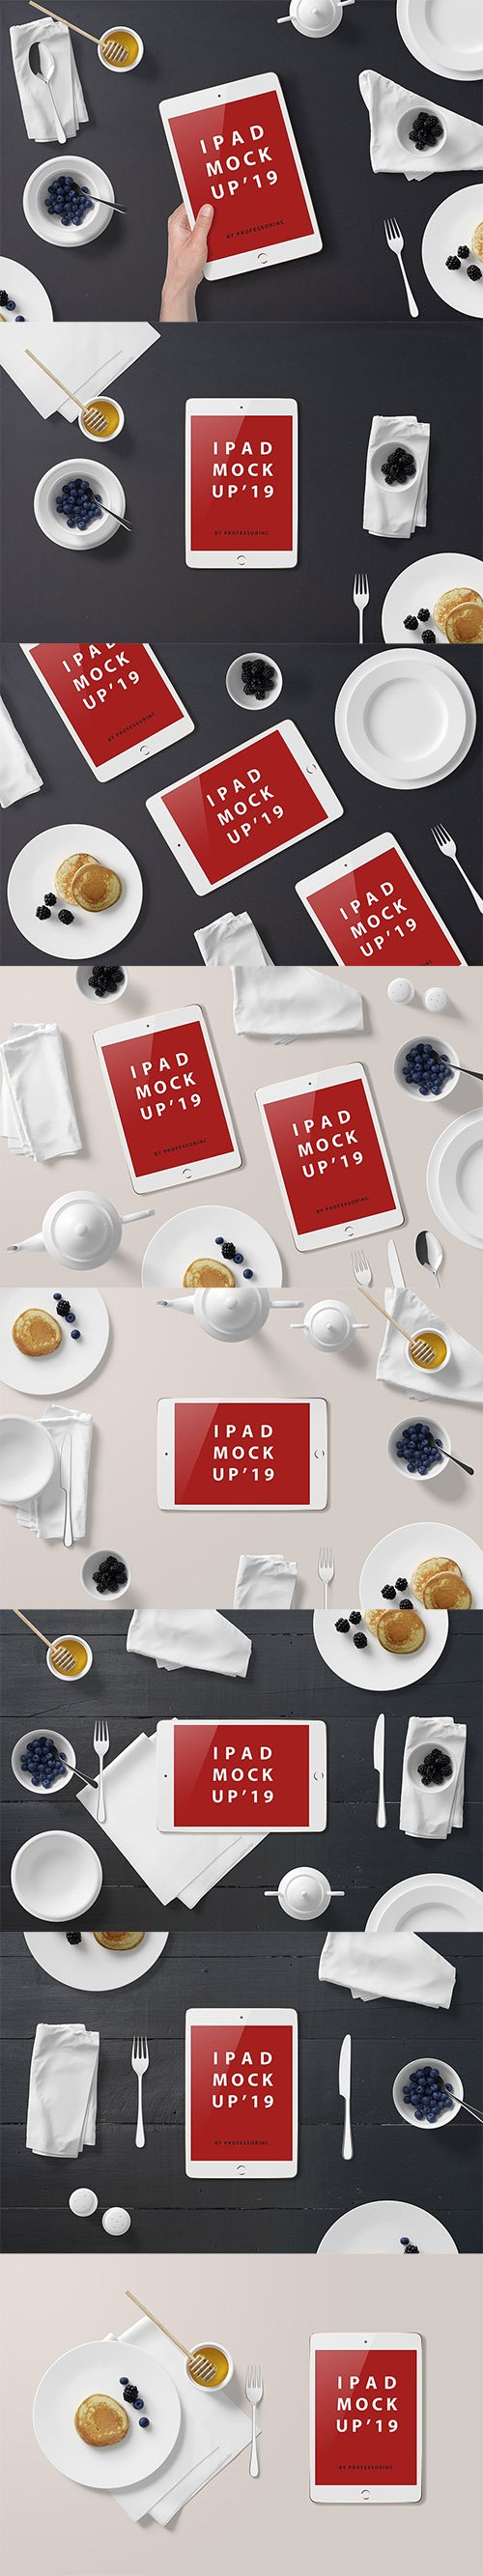 iPad Mini Mockup - Breakfast Set PSD